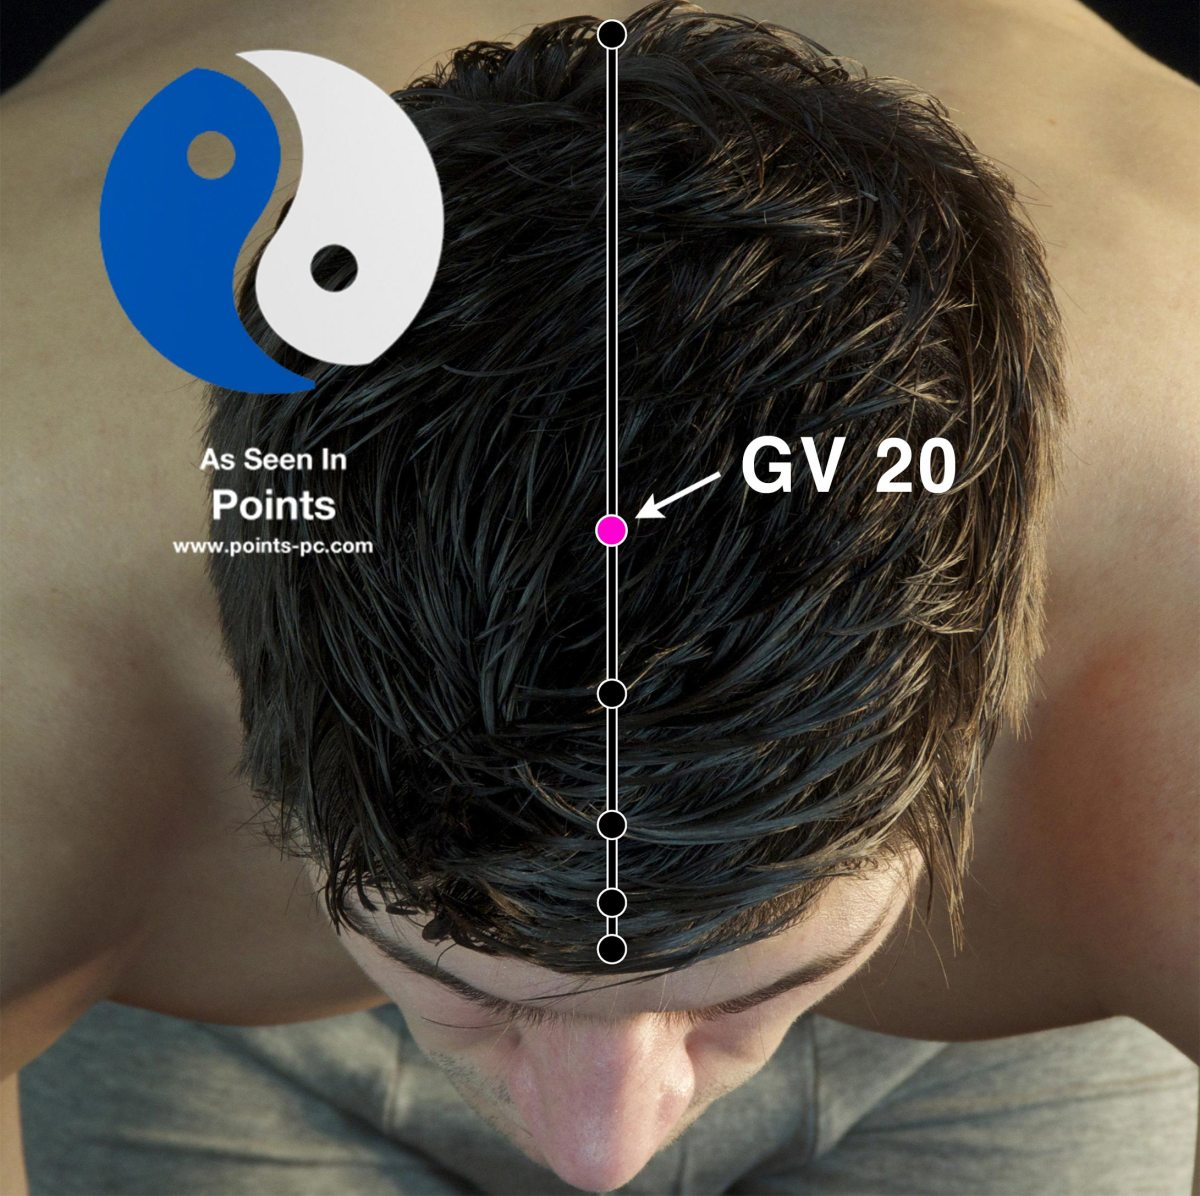 Acupuncture Point: Governor Vessel 20